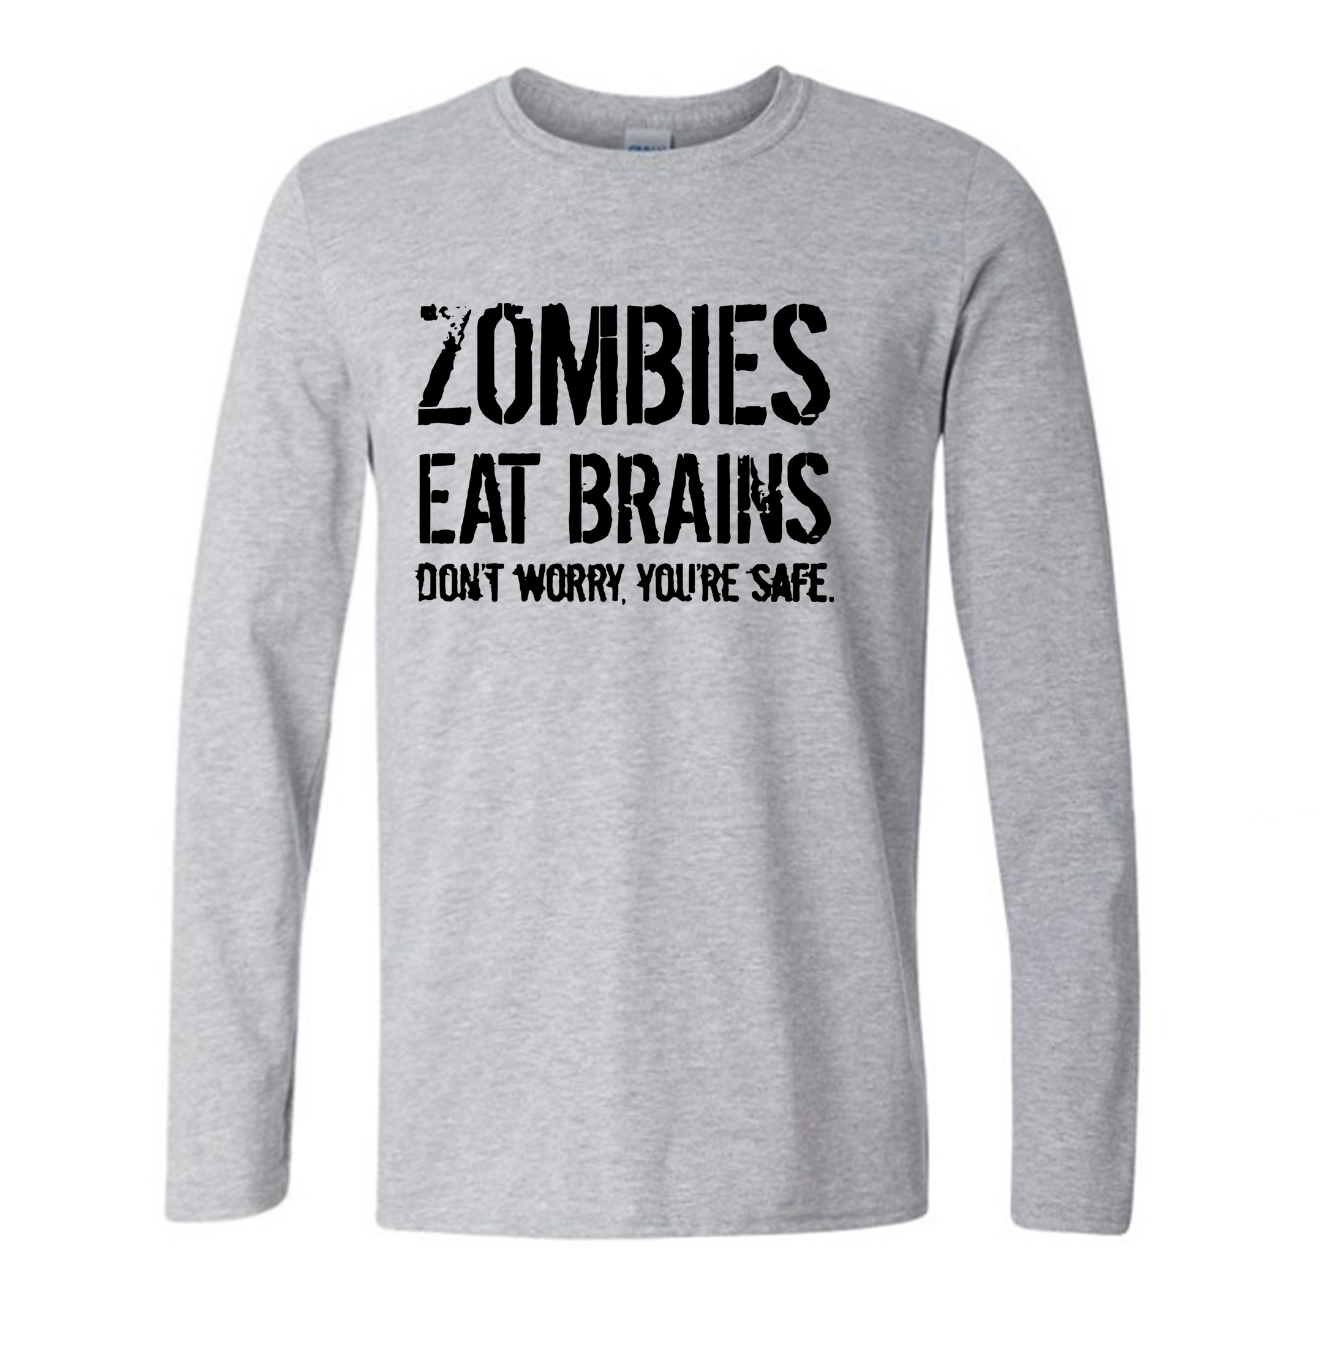 Mens Zombies Eat Brains So Youre Safe T Shirt Funny Zombie Shirt 2017 autumn new funny long sleeve t shirt brand cotton clothes